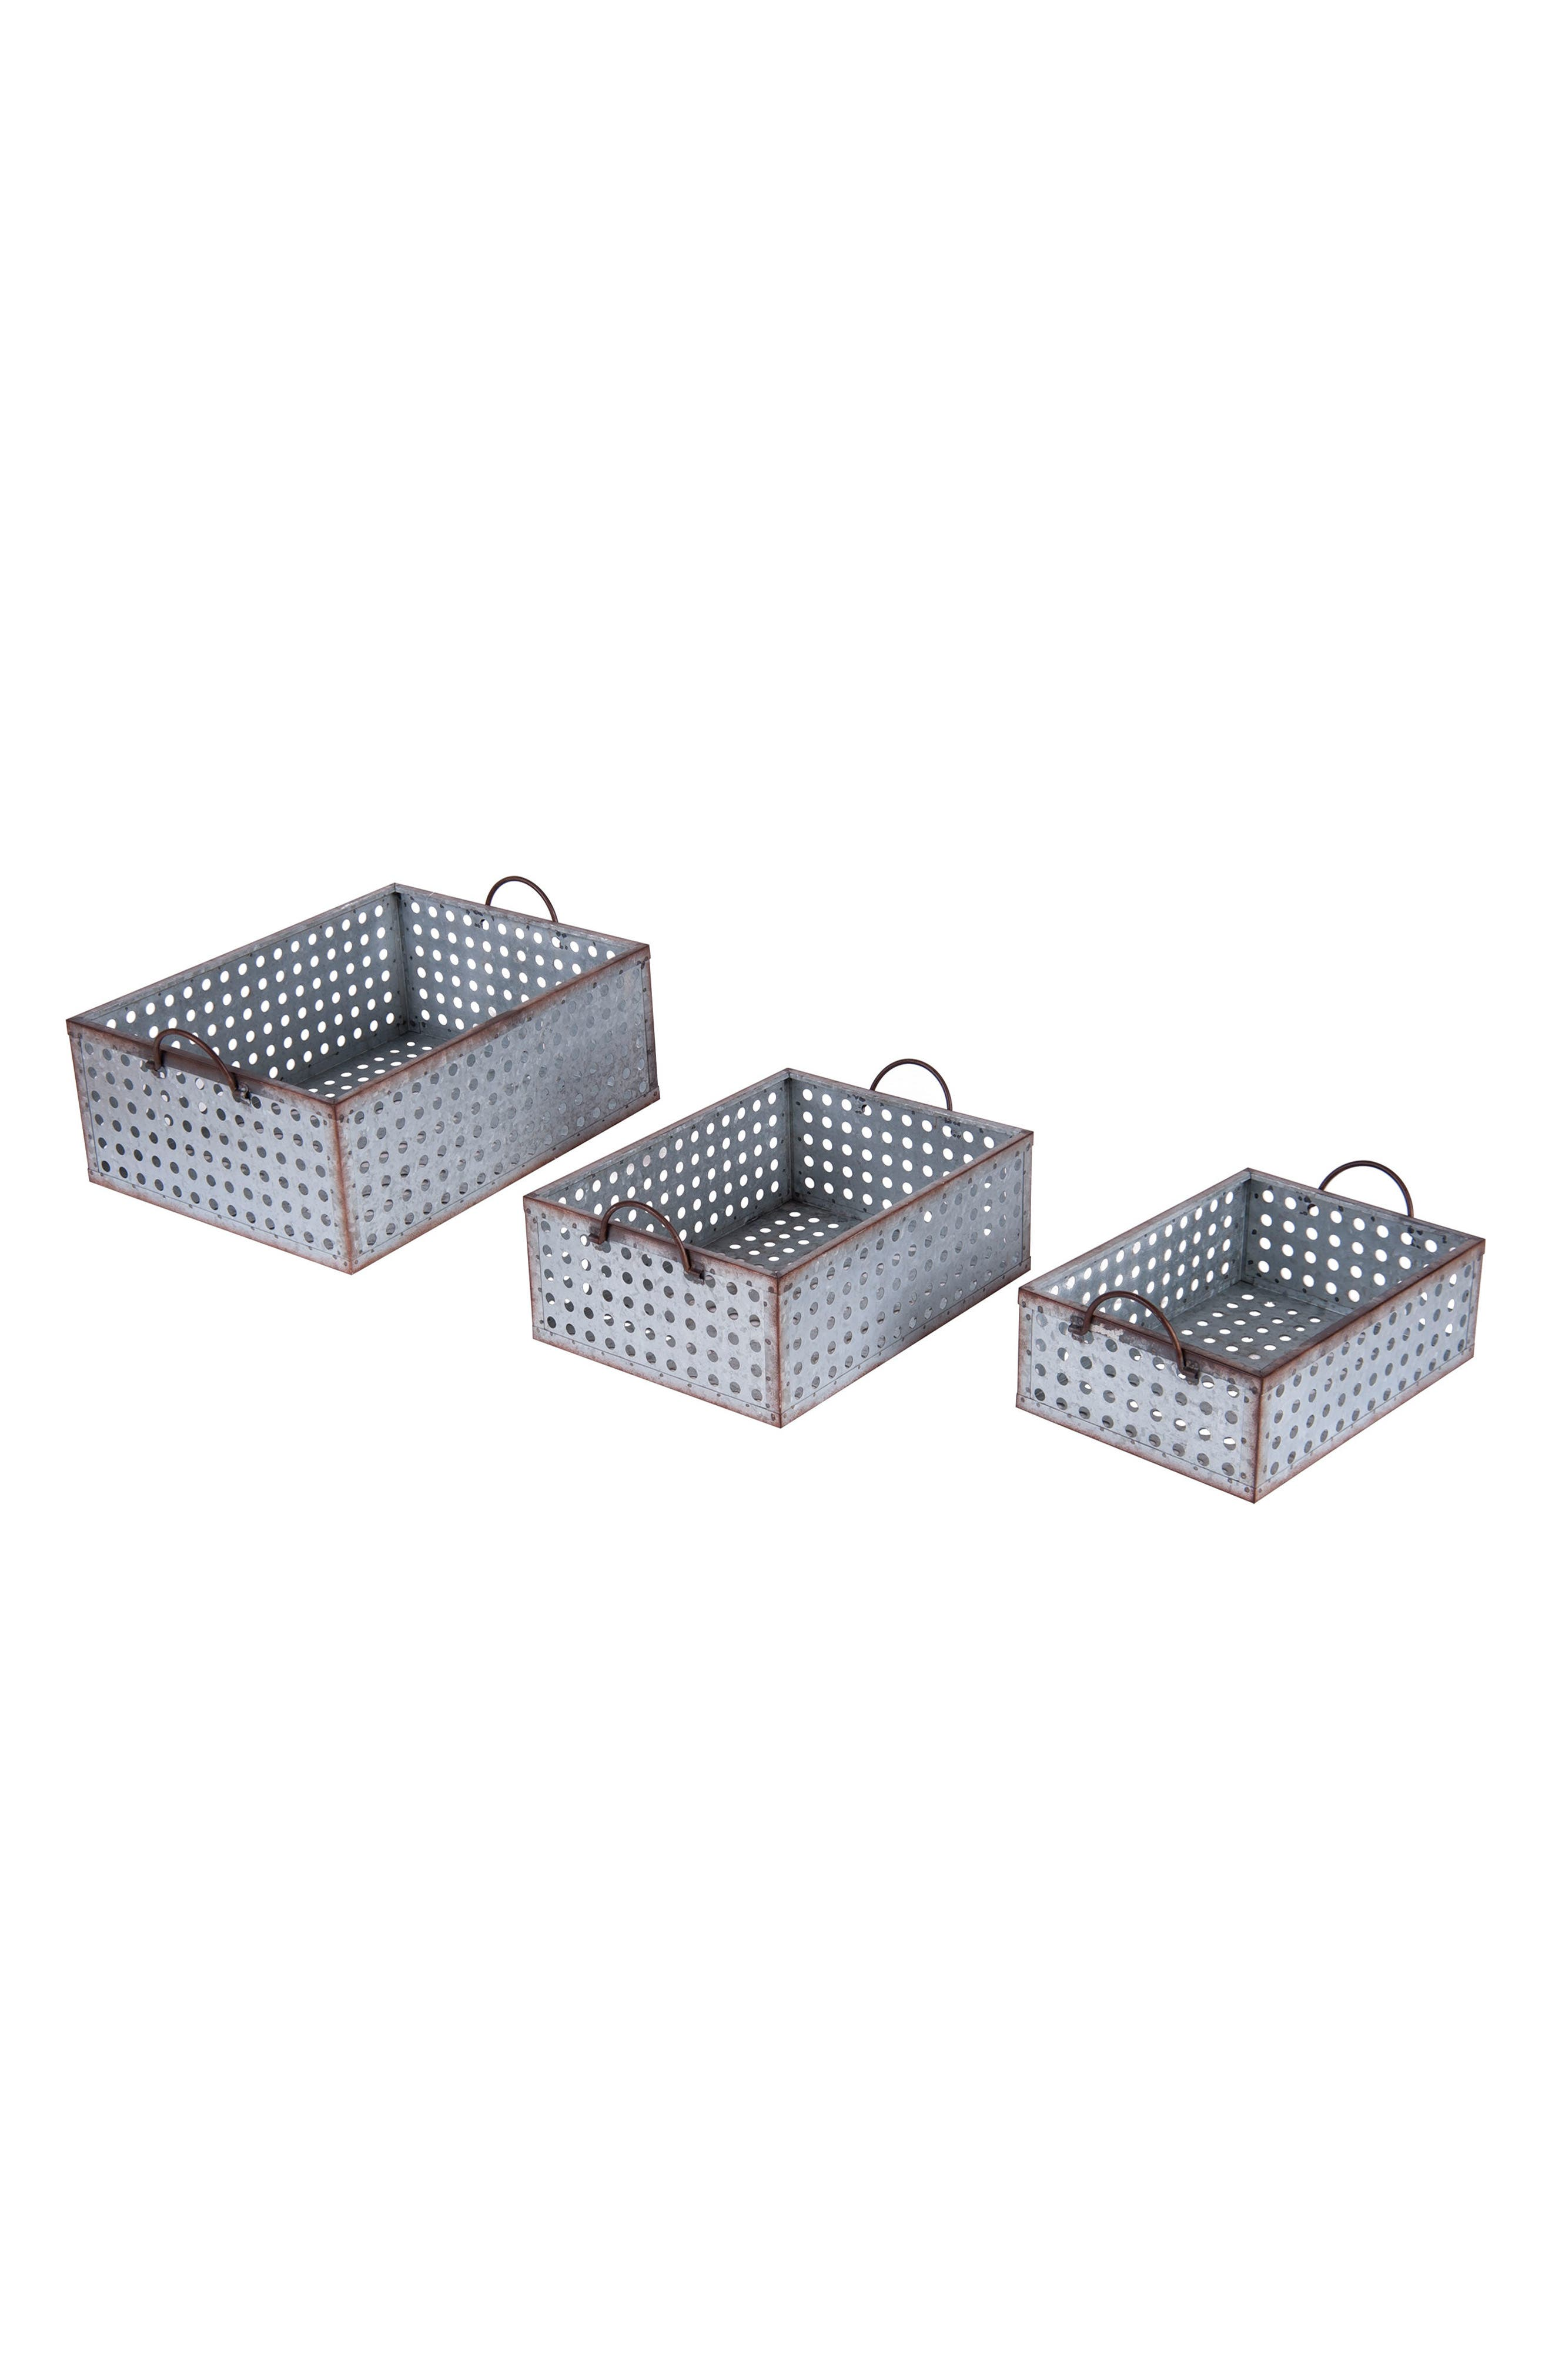 Foreside Set of 3 Perforated Baskets